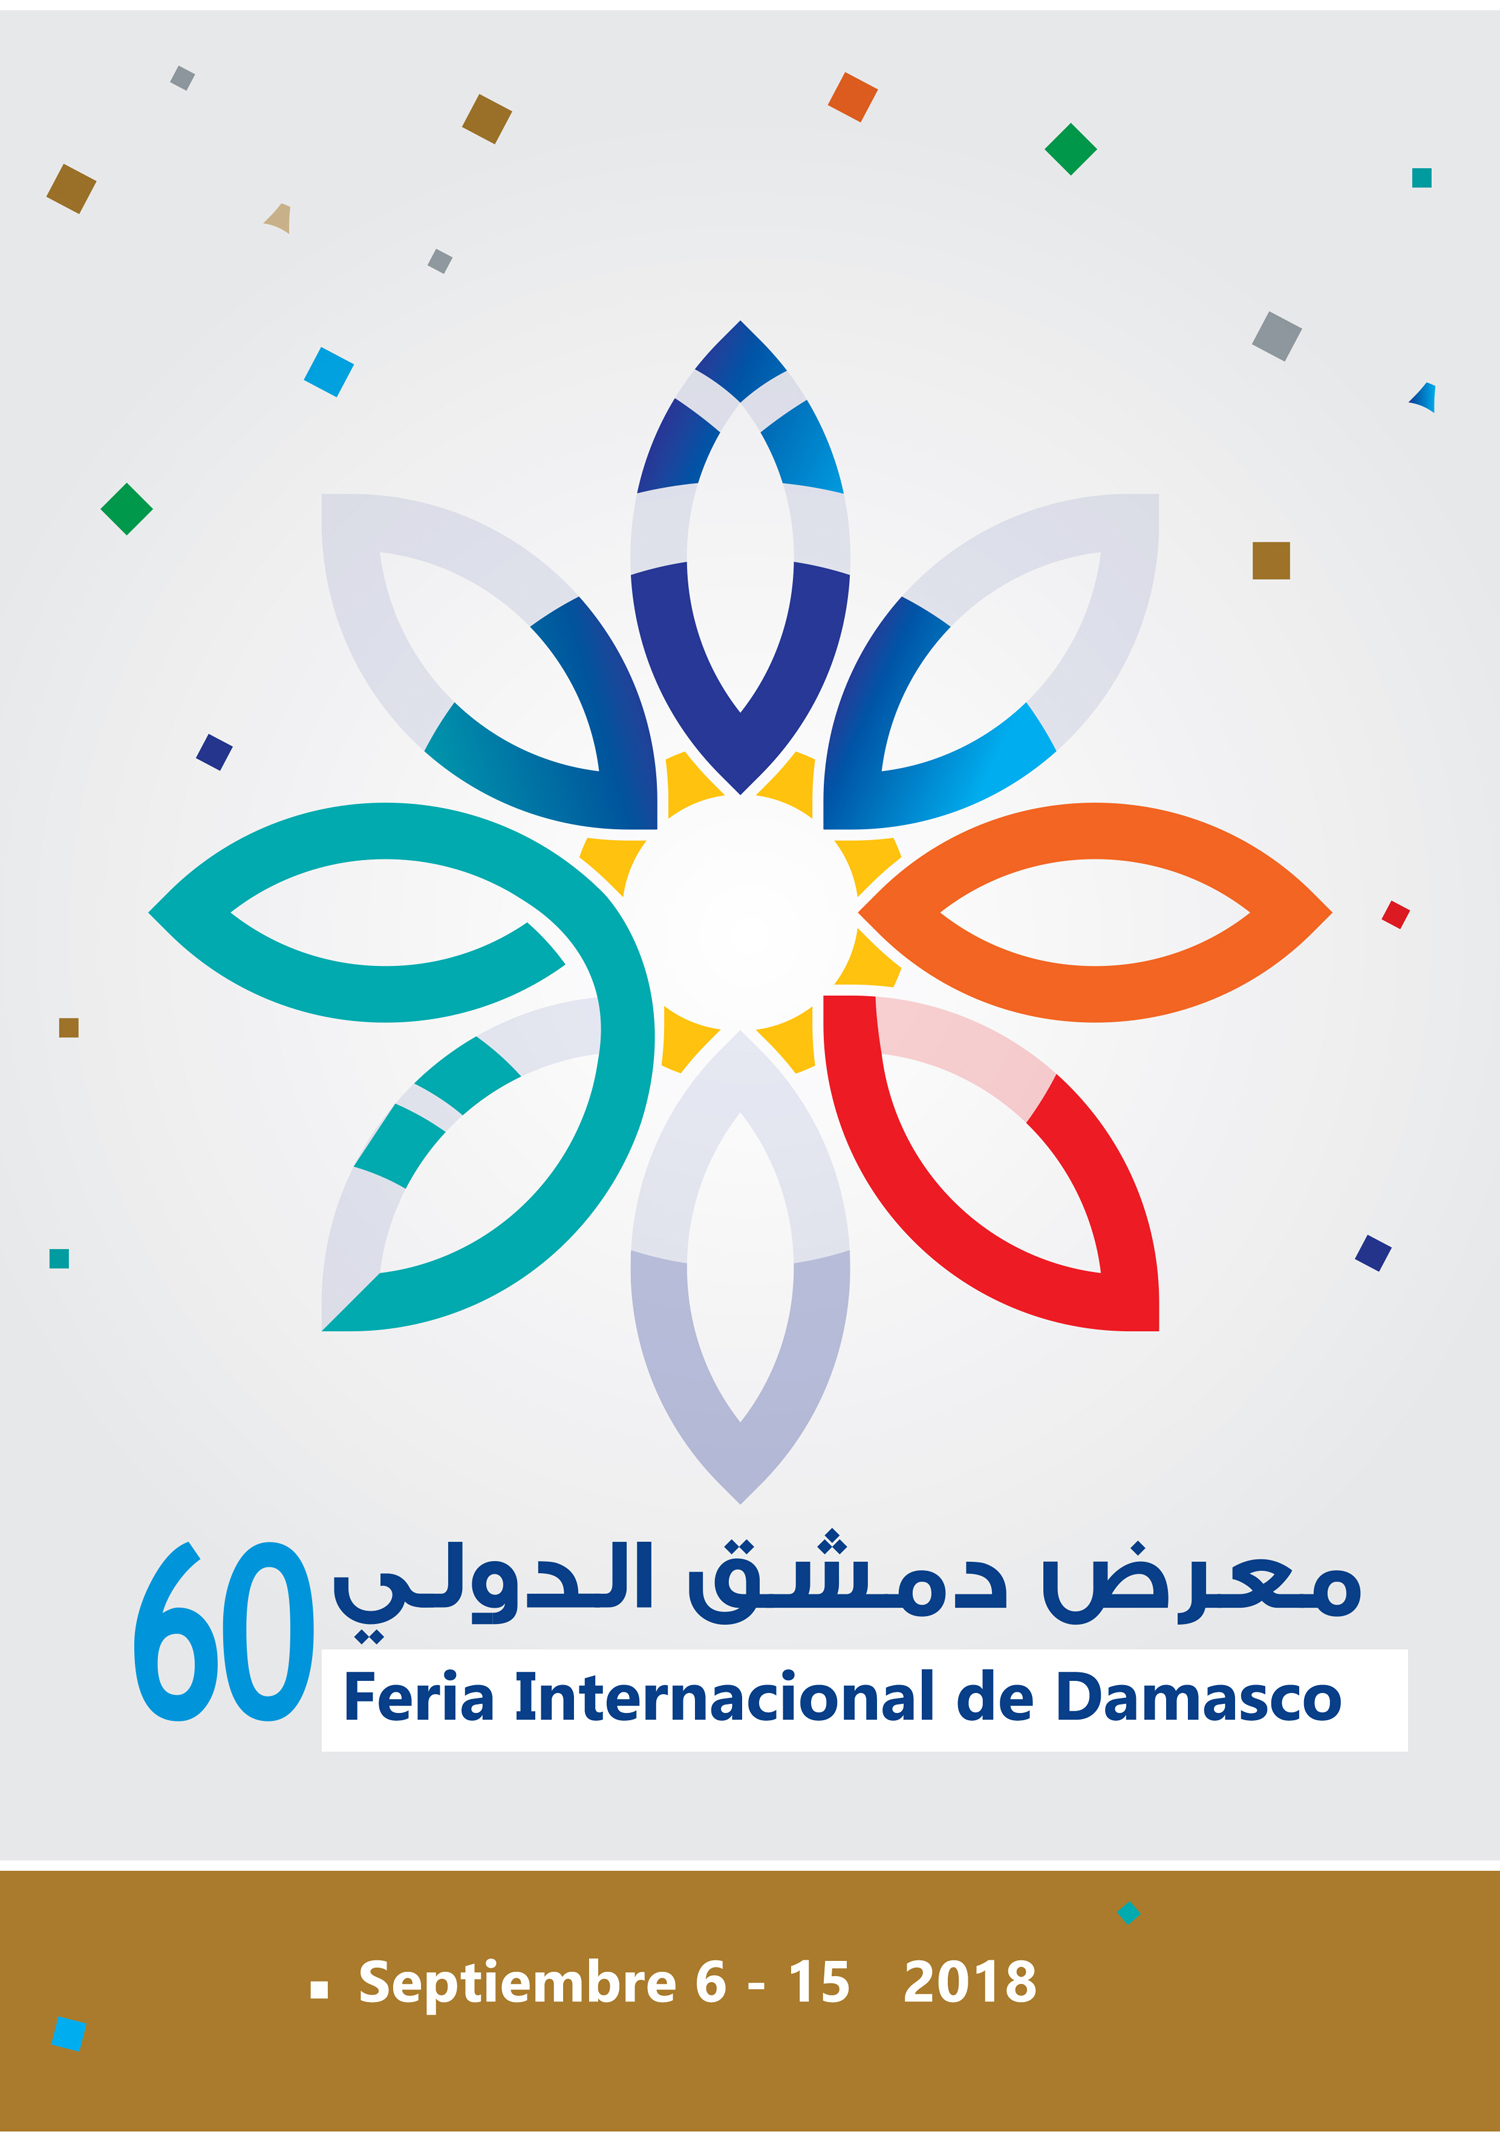 Feria Internacional de Damasco